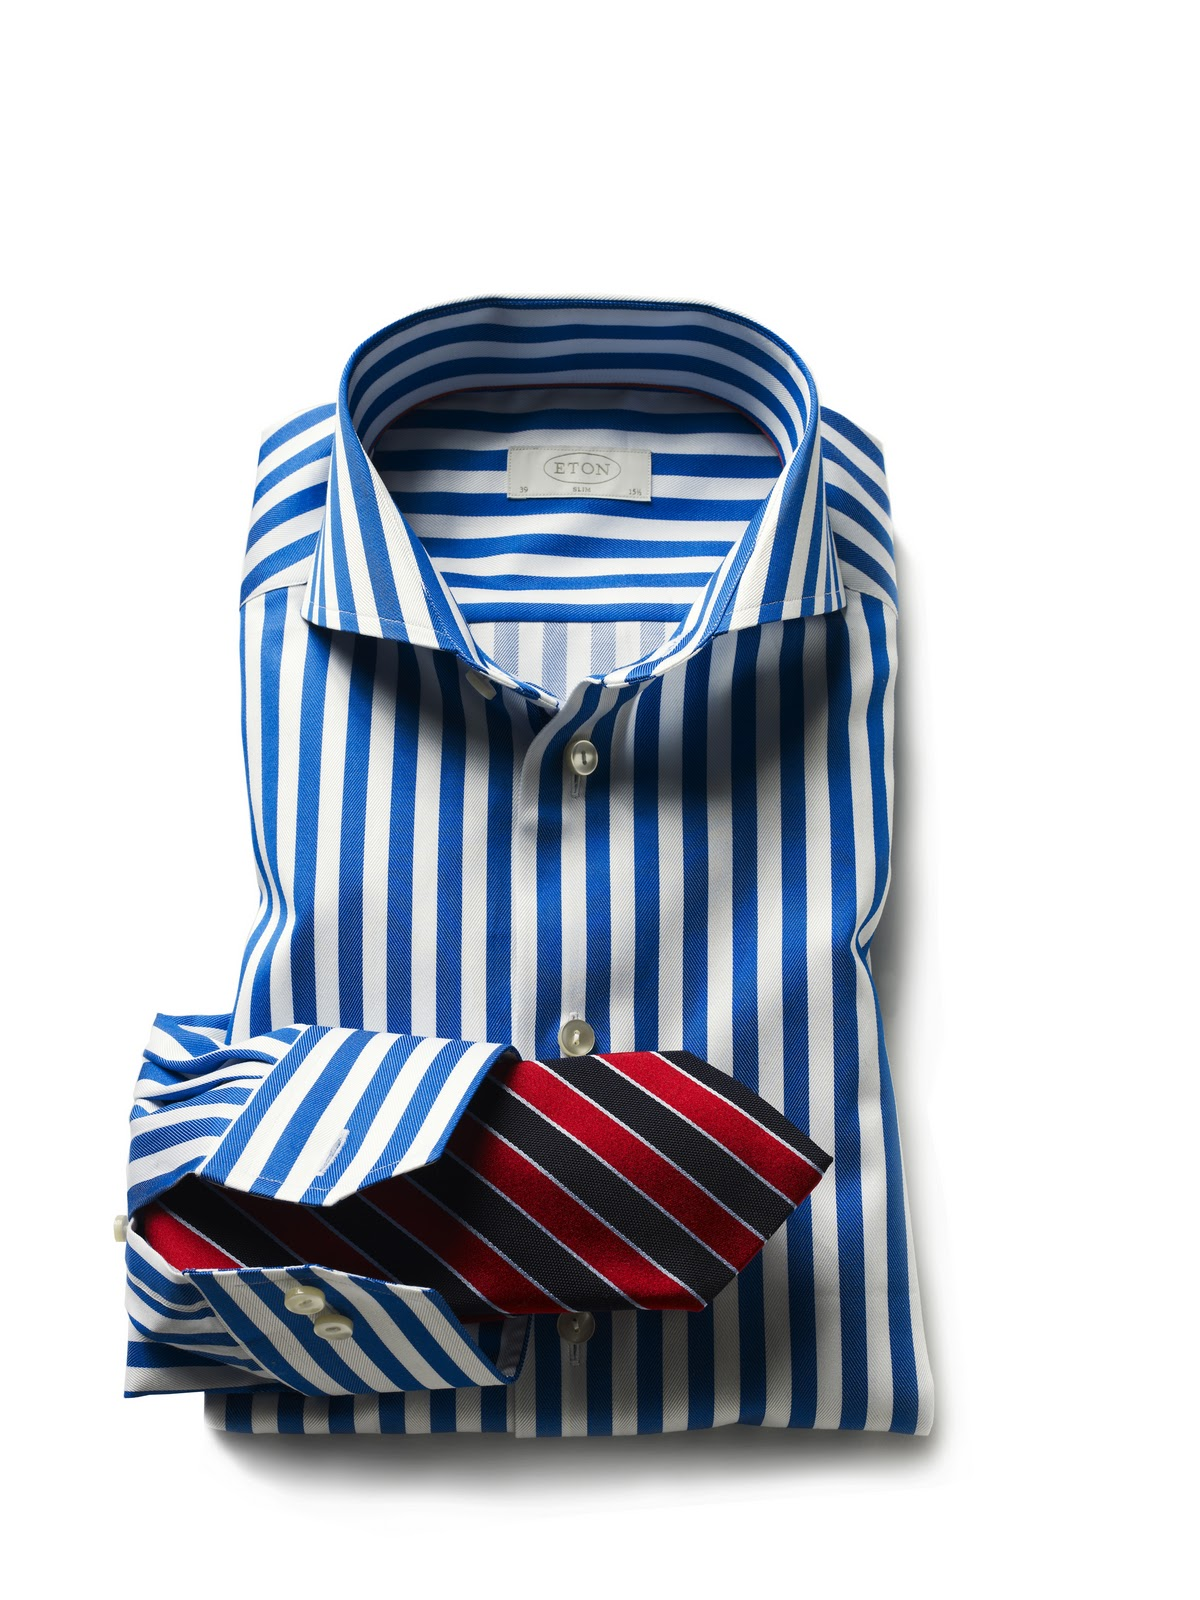 Men 39 s styling shirt tie the dramatic look for Striped shirt with tie